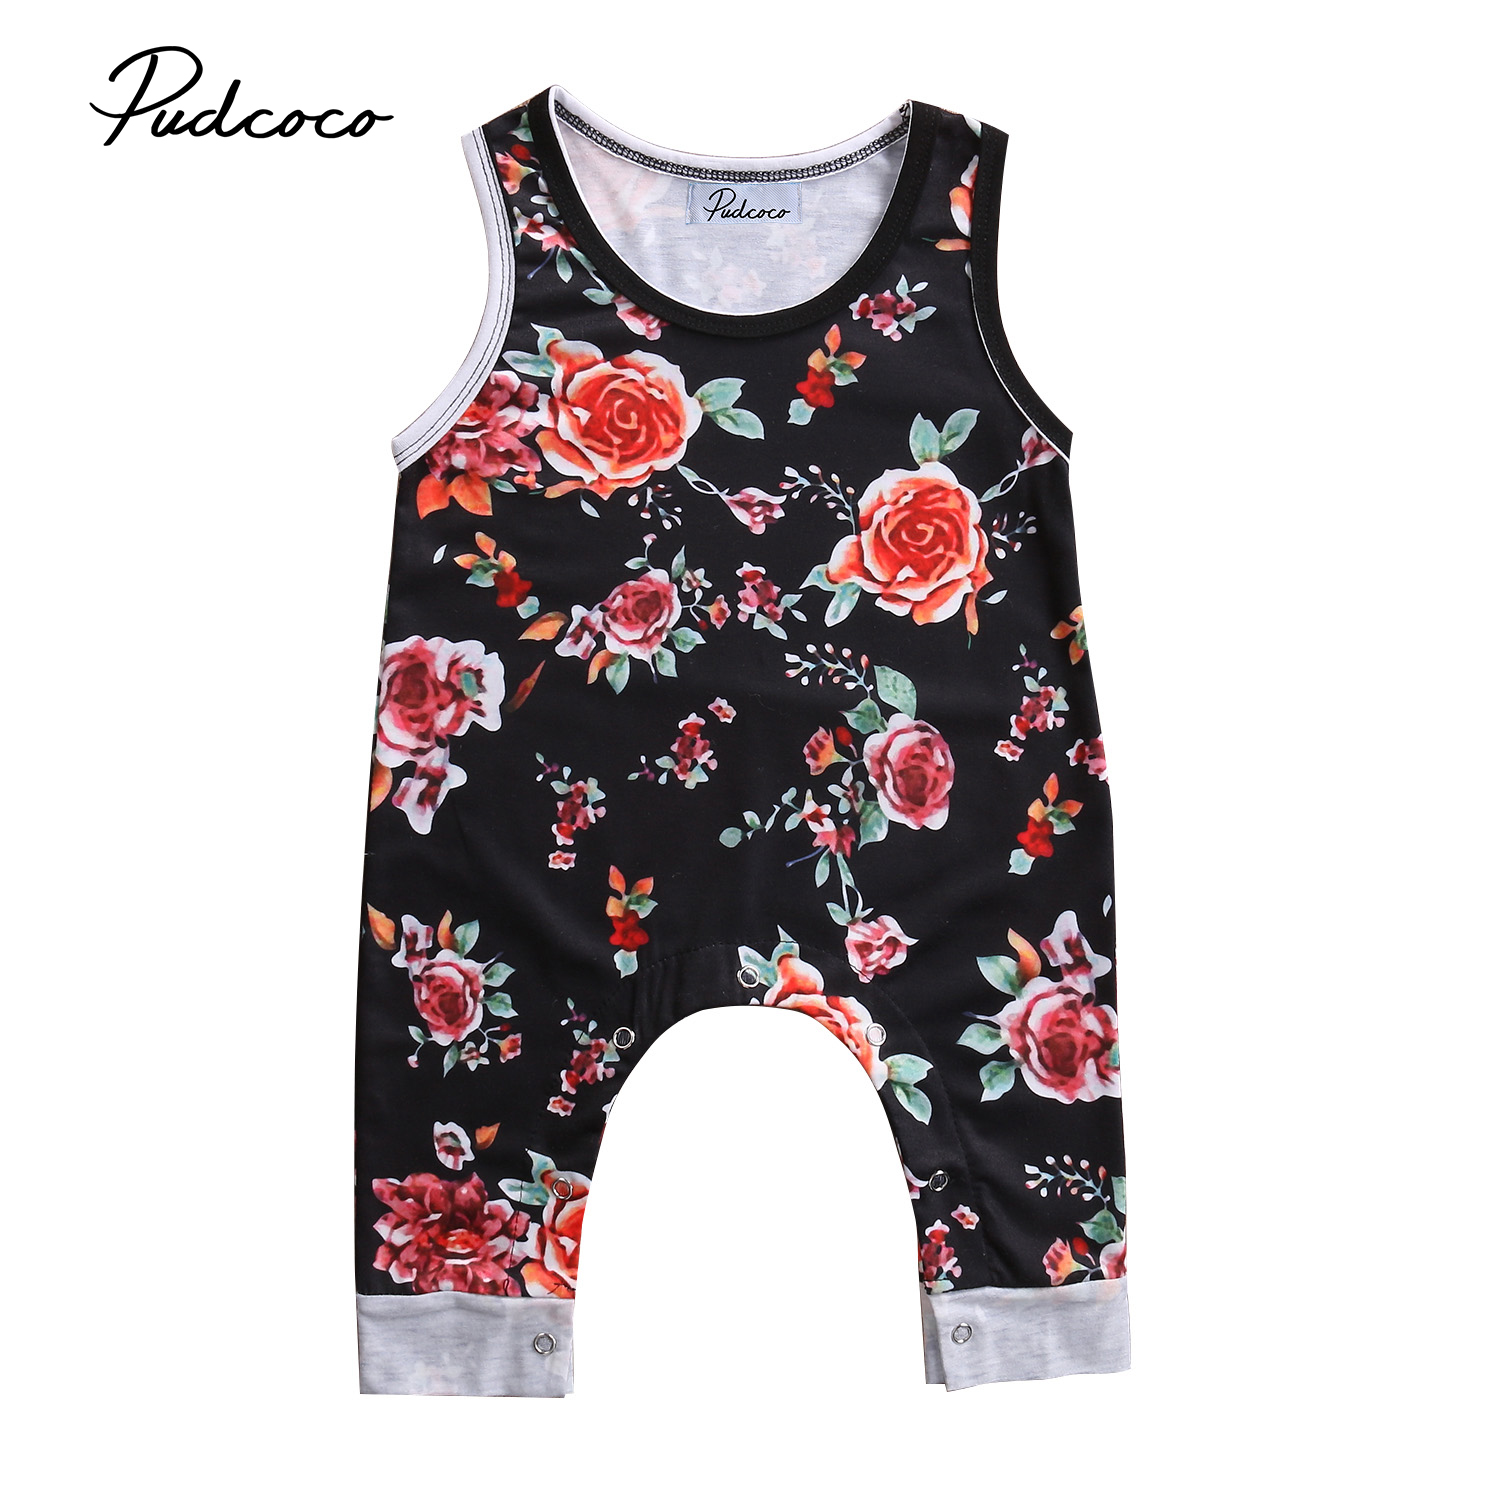 Pudcoco Newborn Infant Baby Girl Cotton Sleeveless O-Neck Floral Romper Outfit 0-3 Years Helen115